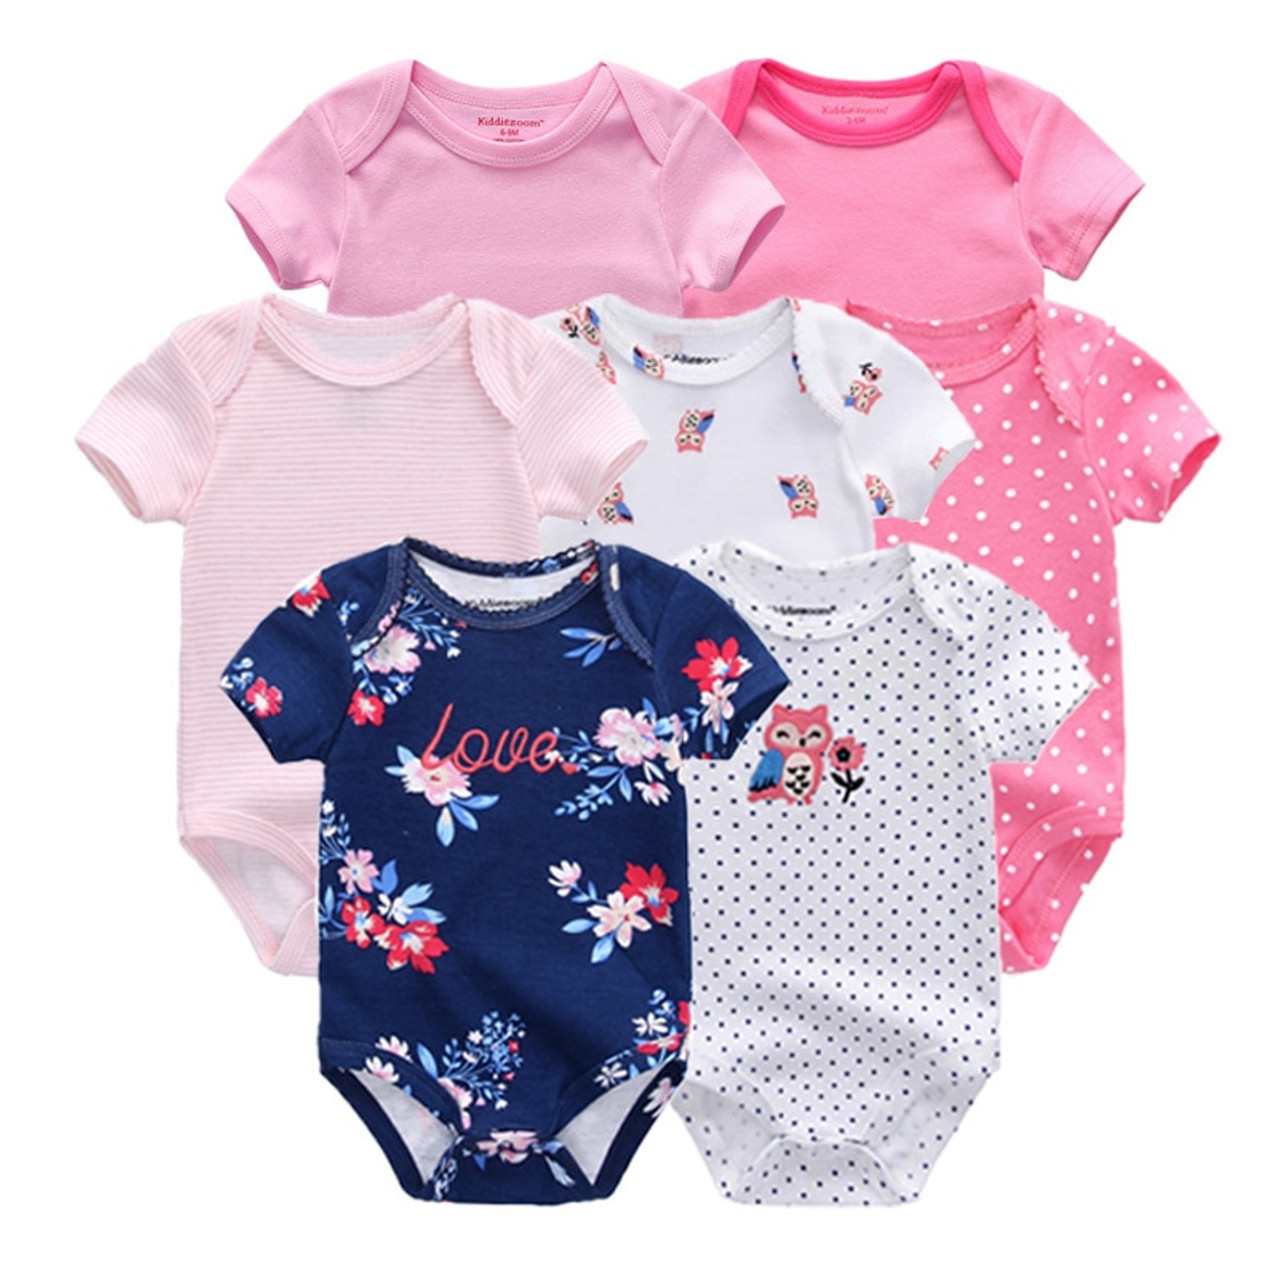 98ee494e9 7 PCS lot newborn baby clothes baby rompers short sleeve baby ...